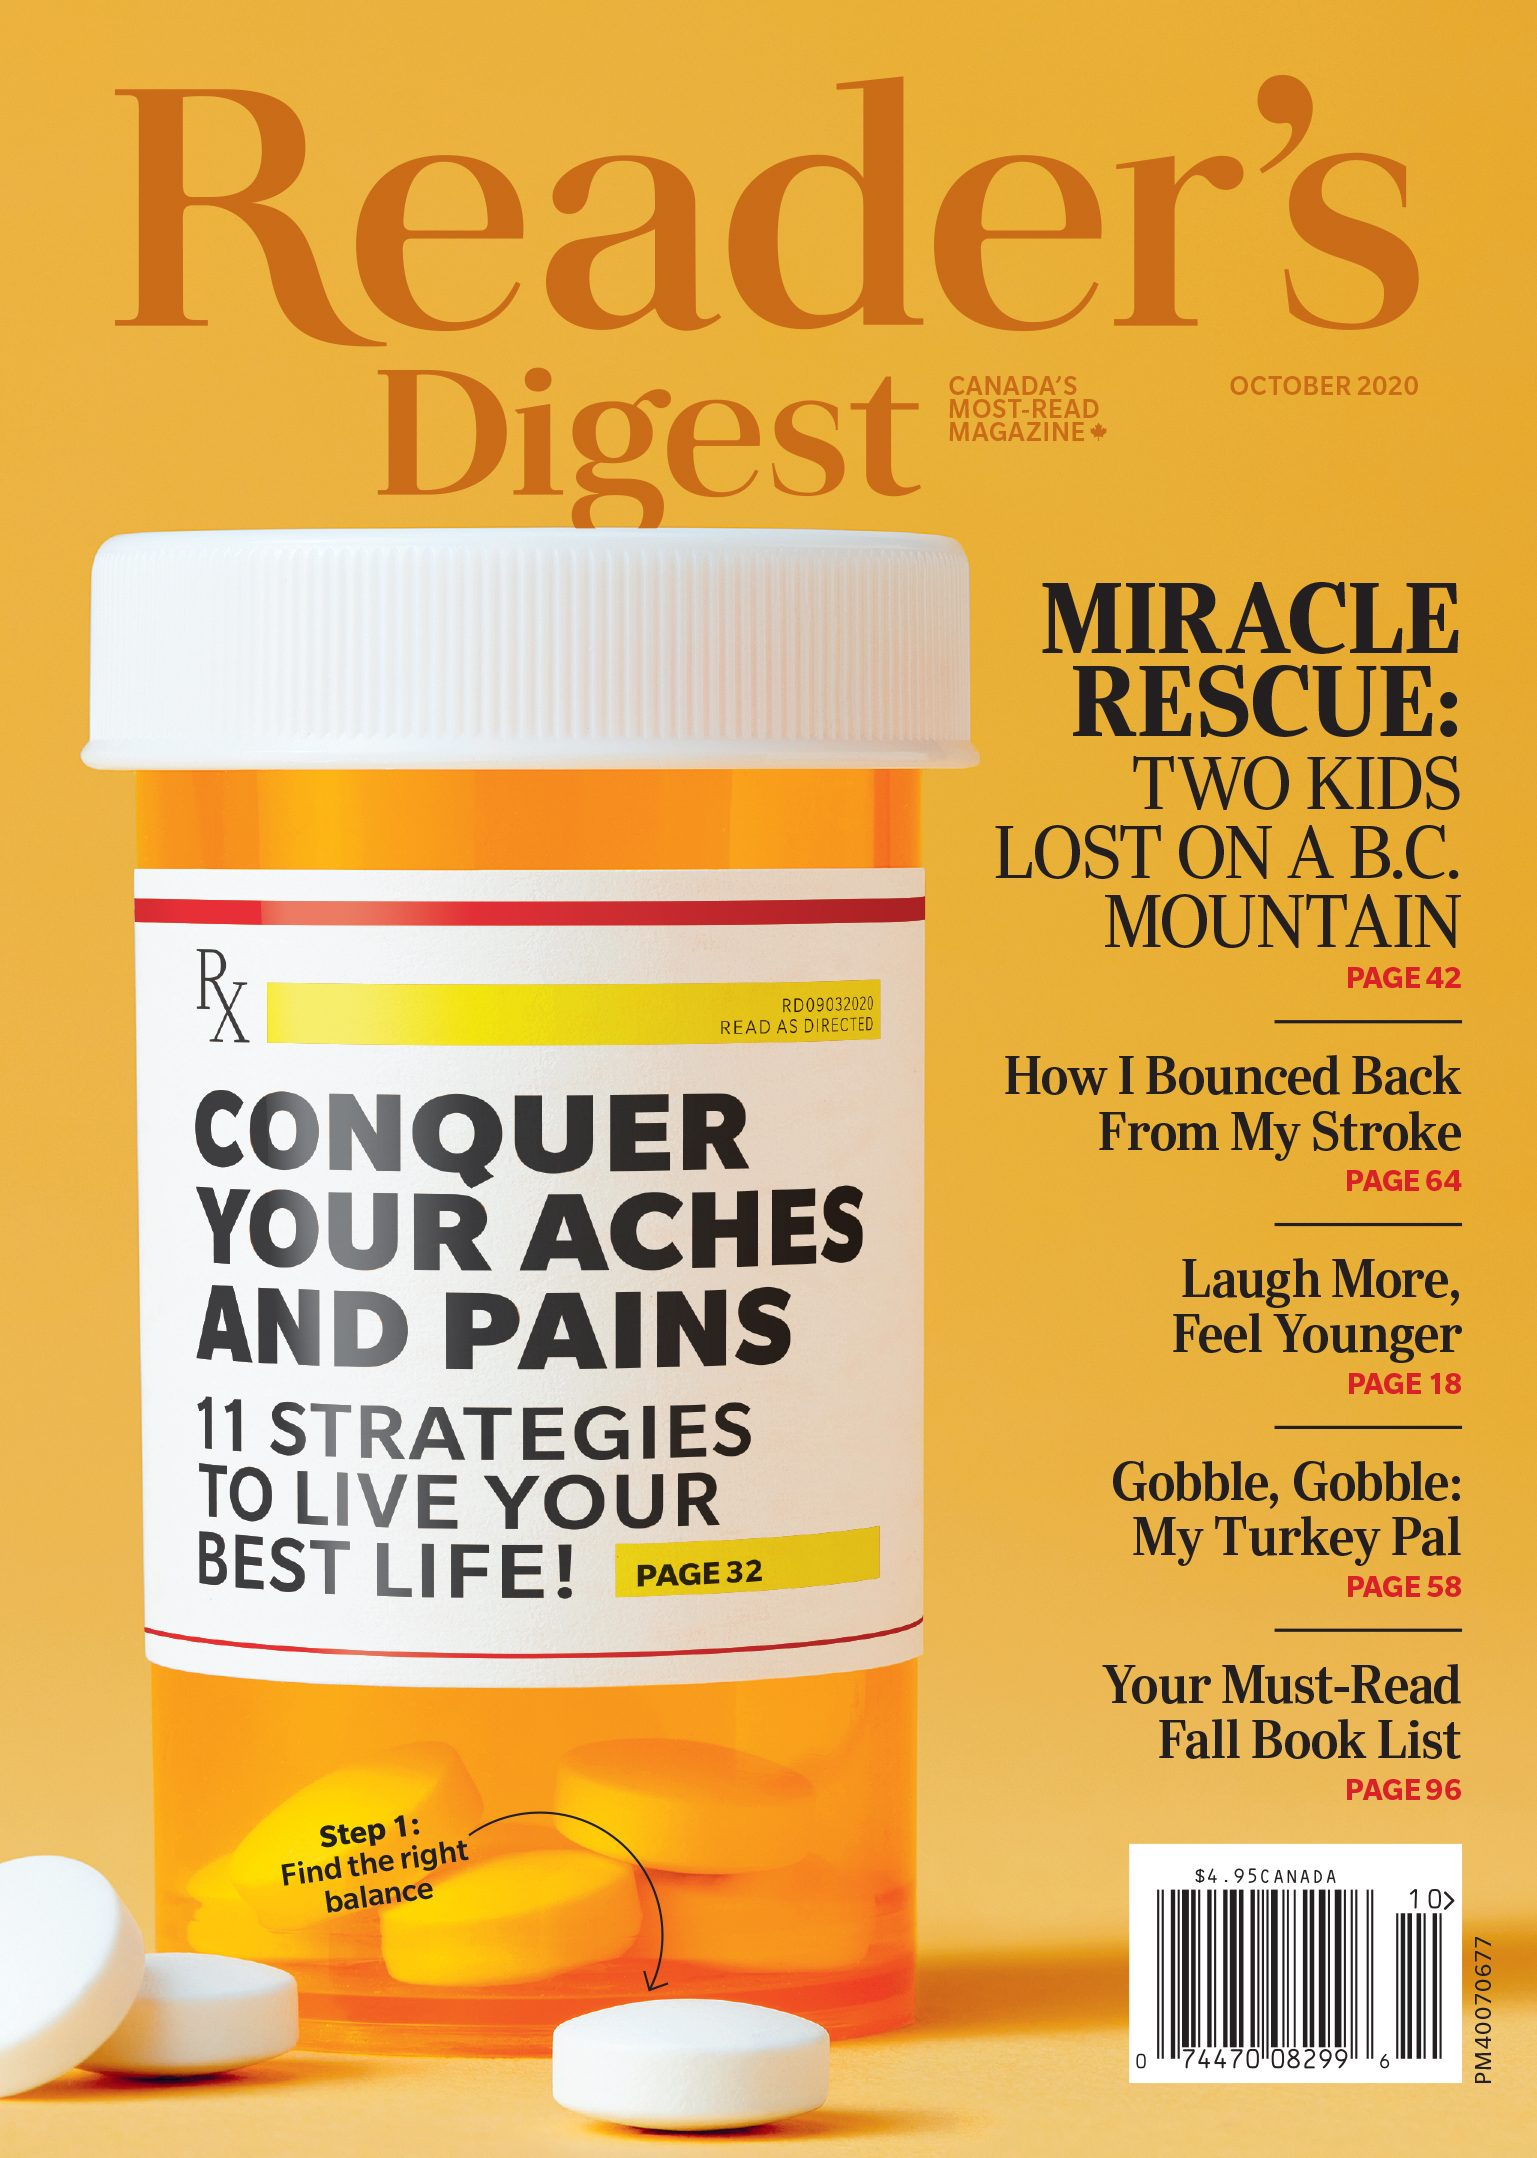 Reader's Digest Canada - October 2020 issue